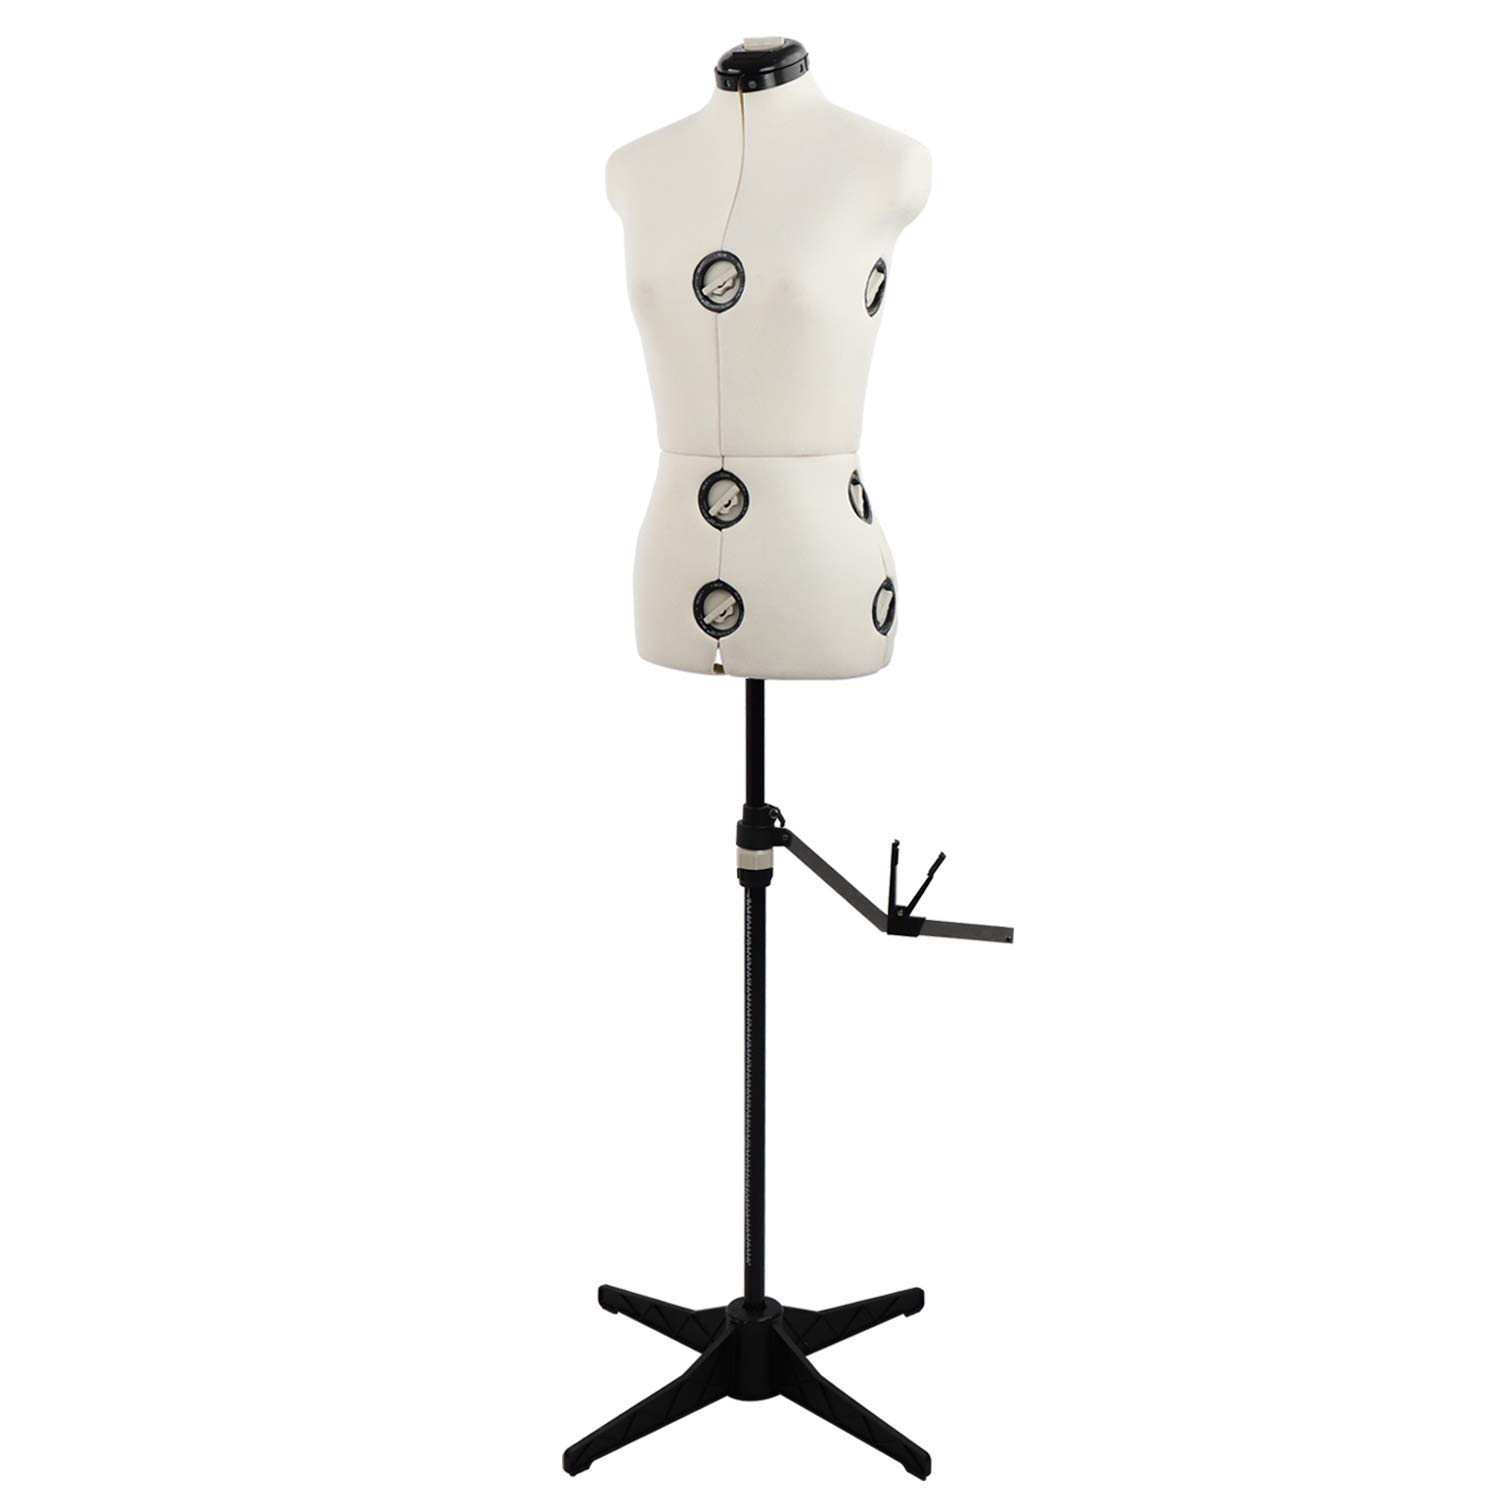 13 Dials Mannequin Torso Body with Tri-Pod Stand, Adjustable Pinnable Dress Forms for Sewing, Dressmakers Up to 69 Inch Shoulder Height (Medium) by PDM Worldwide